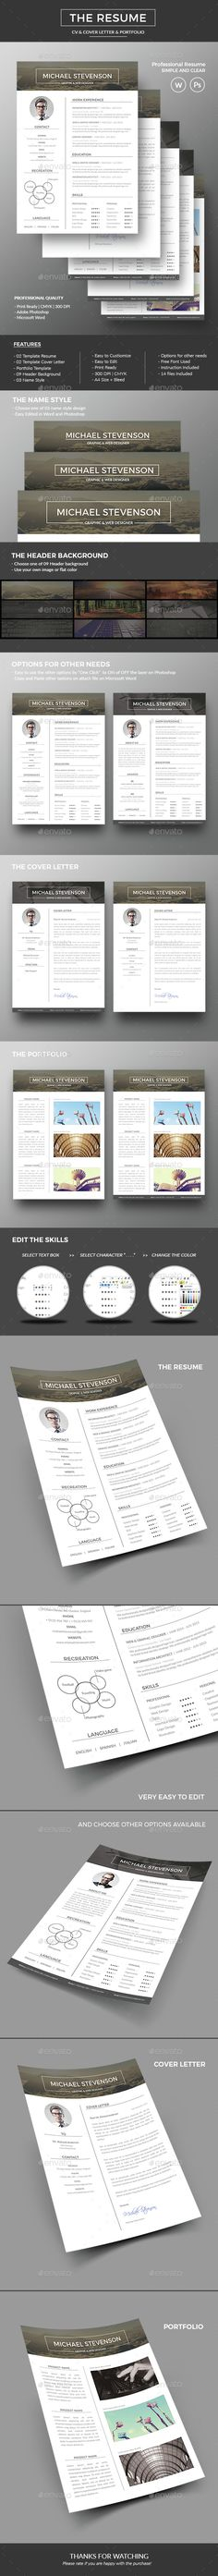 The Resume / CV — Photoshop PSD #resume template #clean • Available here → https://graphicriver.net/item/the-resume-cv/13916785?ref=pxcr